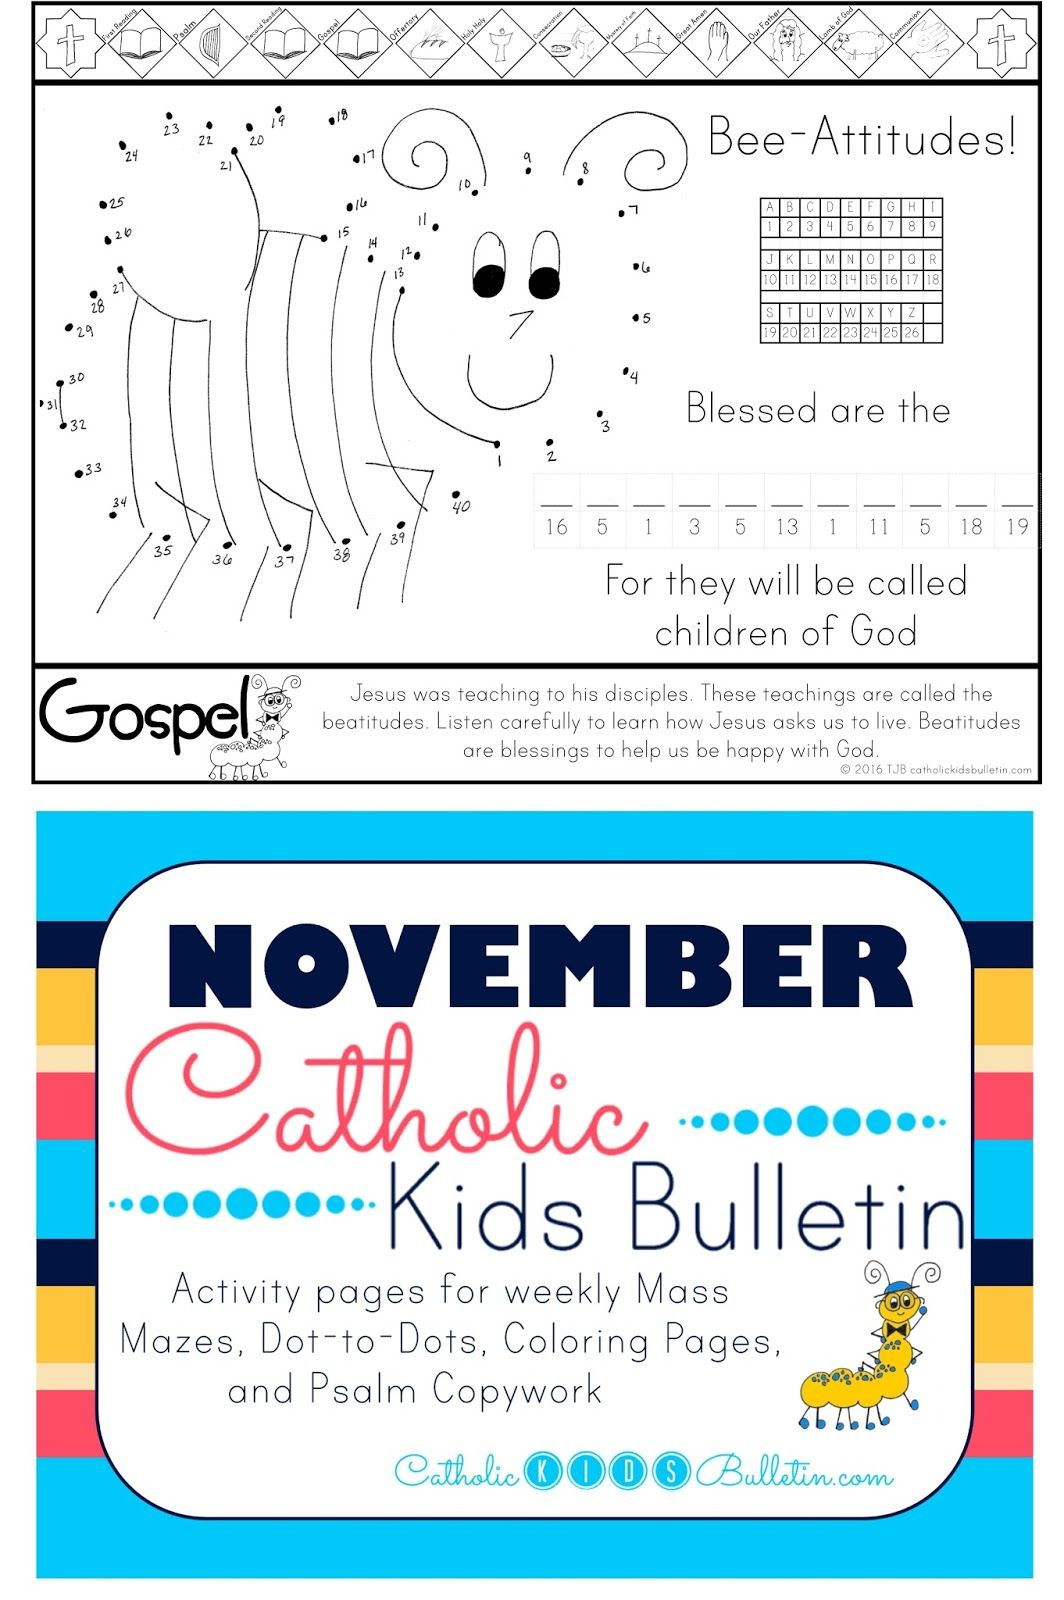 Catholic Kids Bulletin Weekly Mass Prep For Kids Beatitudes